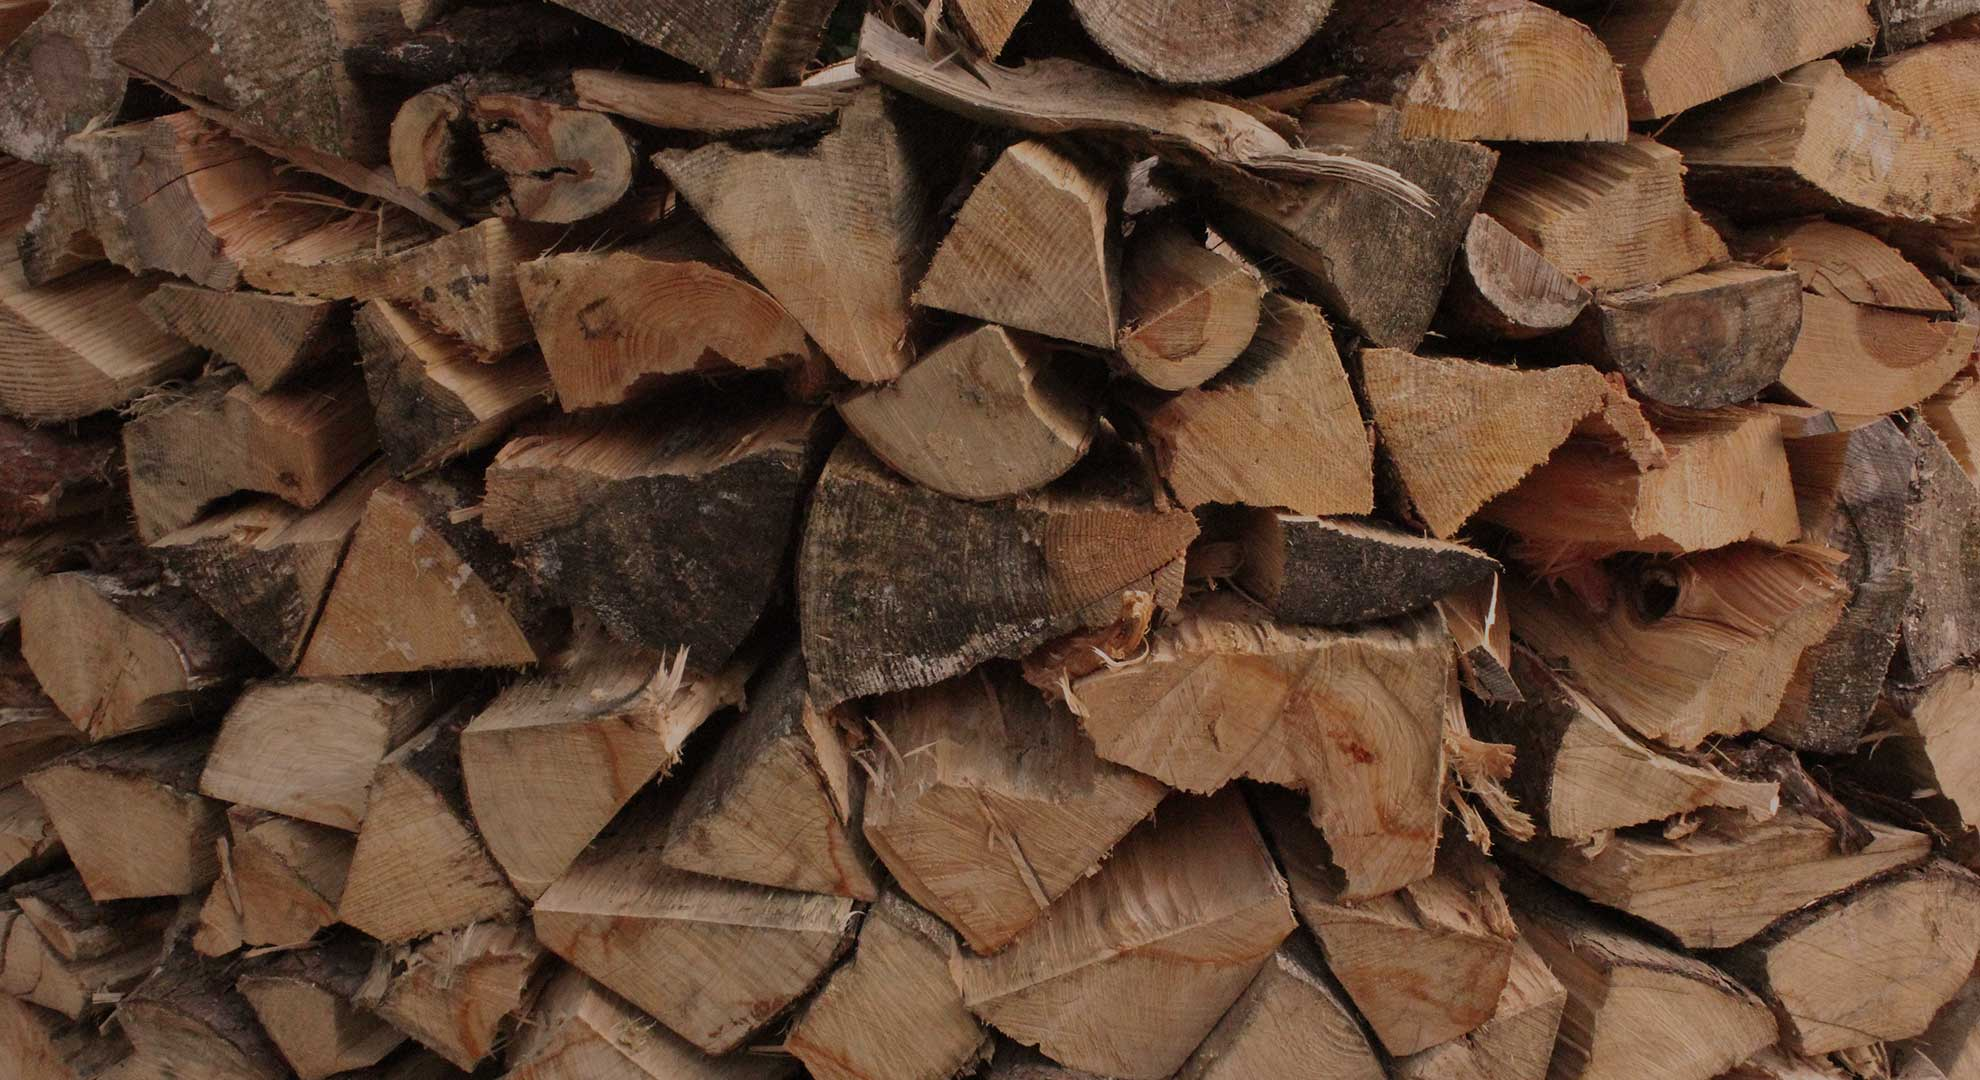 Sussex Timber Co kindling